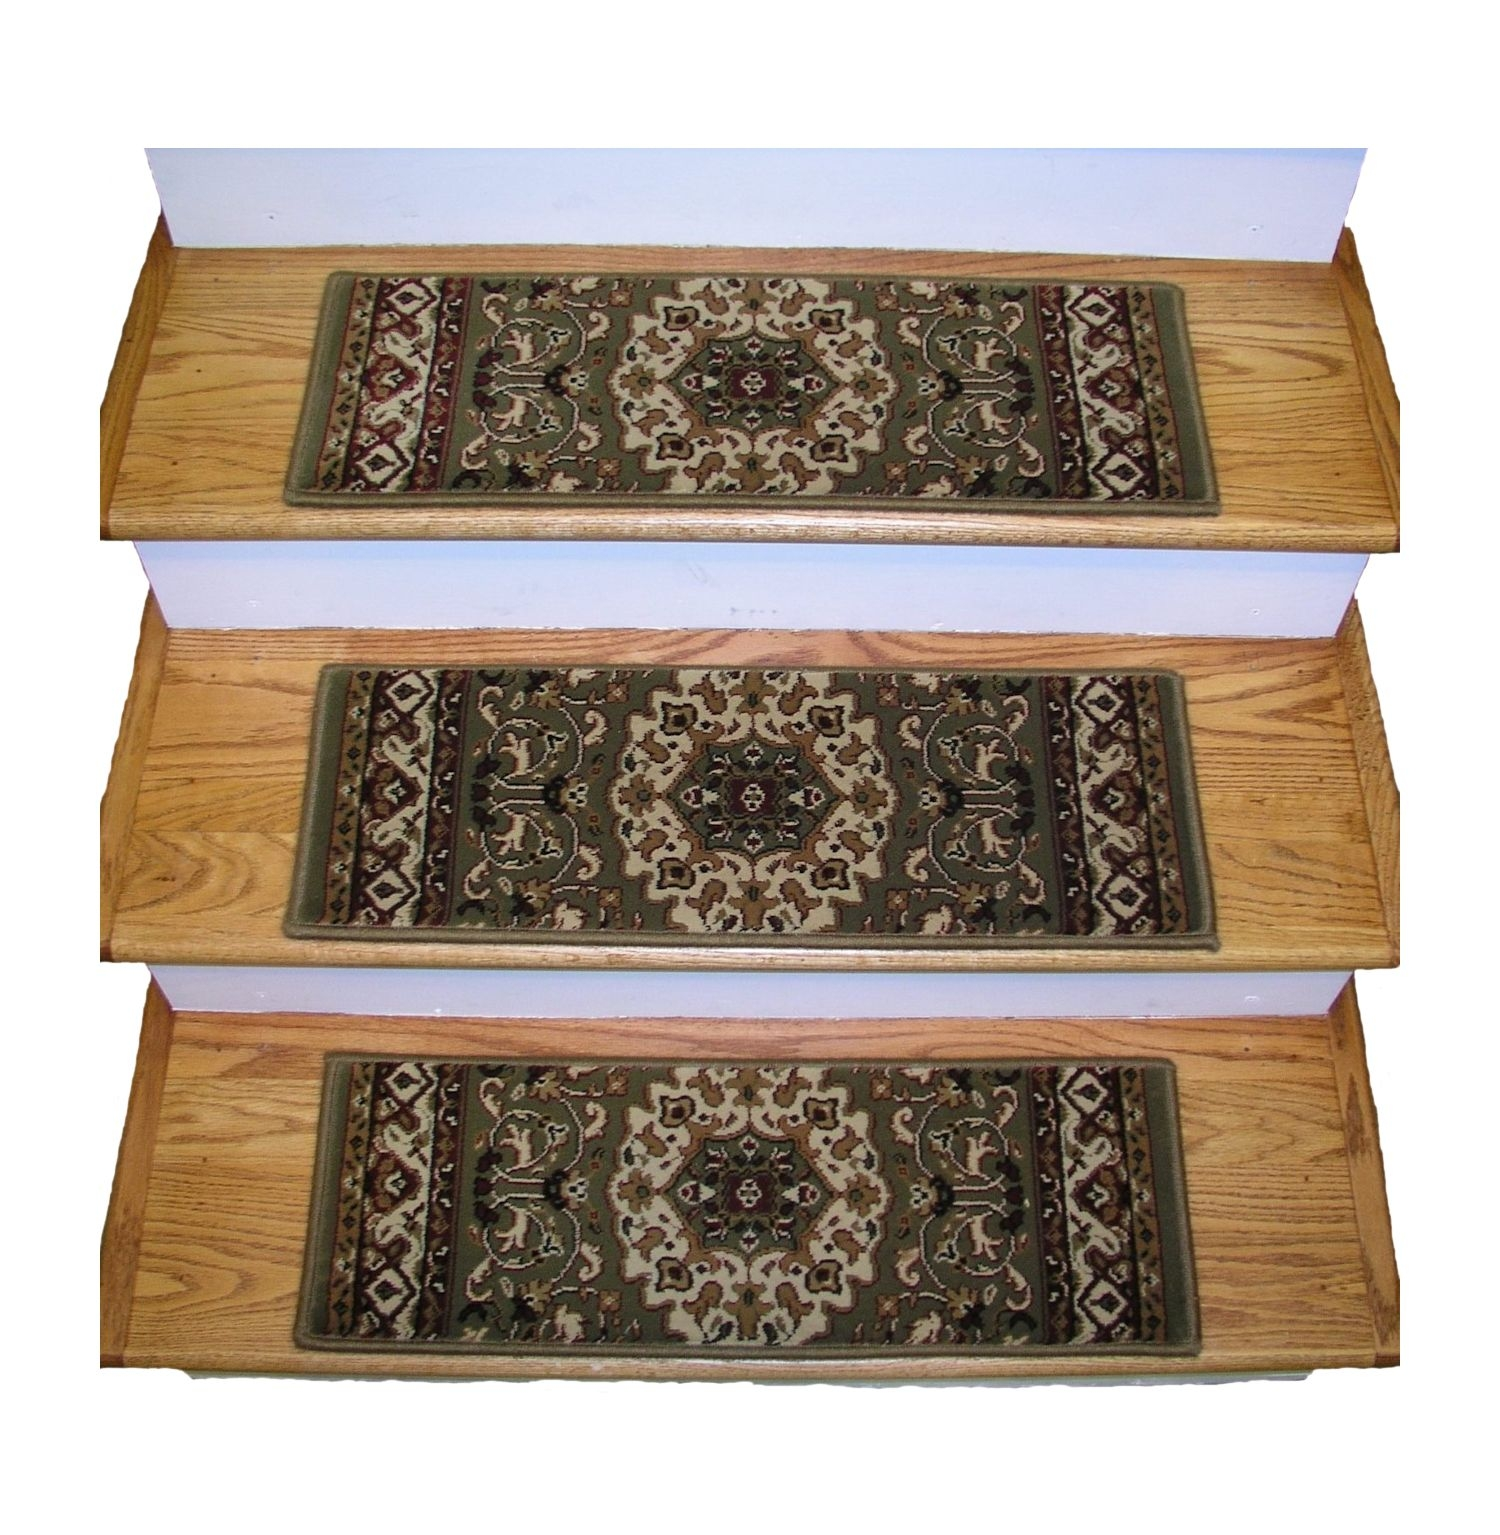 20 Collection Of Non Slip Carpet Stair Treads Indoor stair step rugs